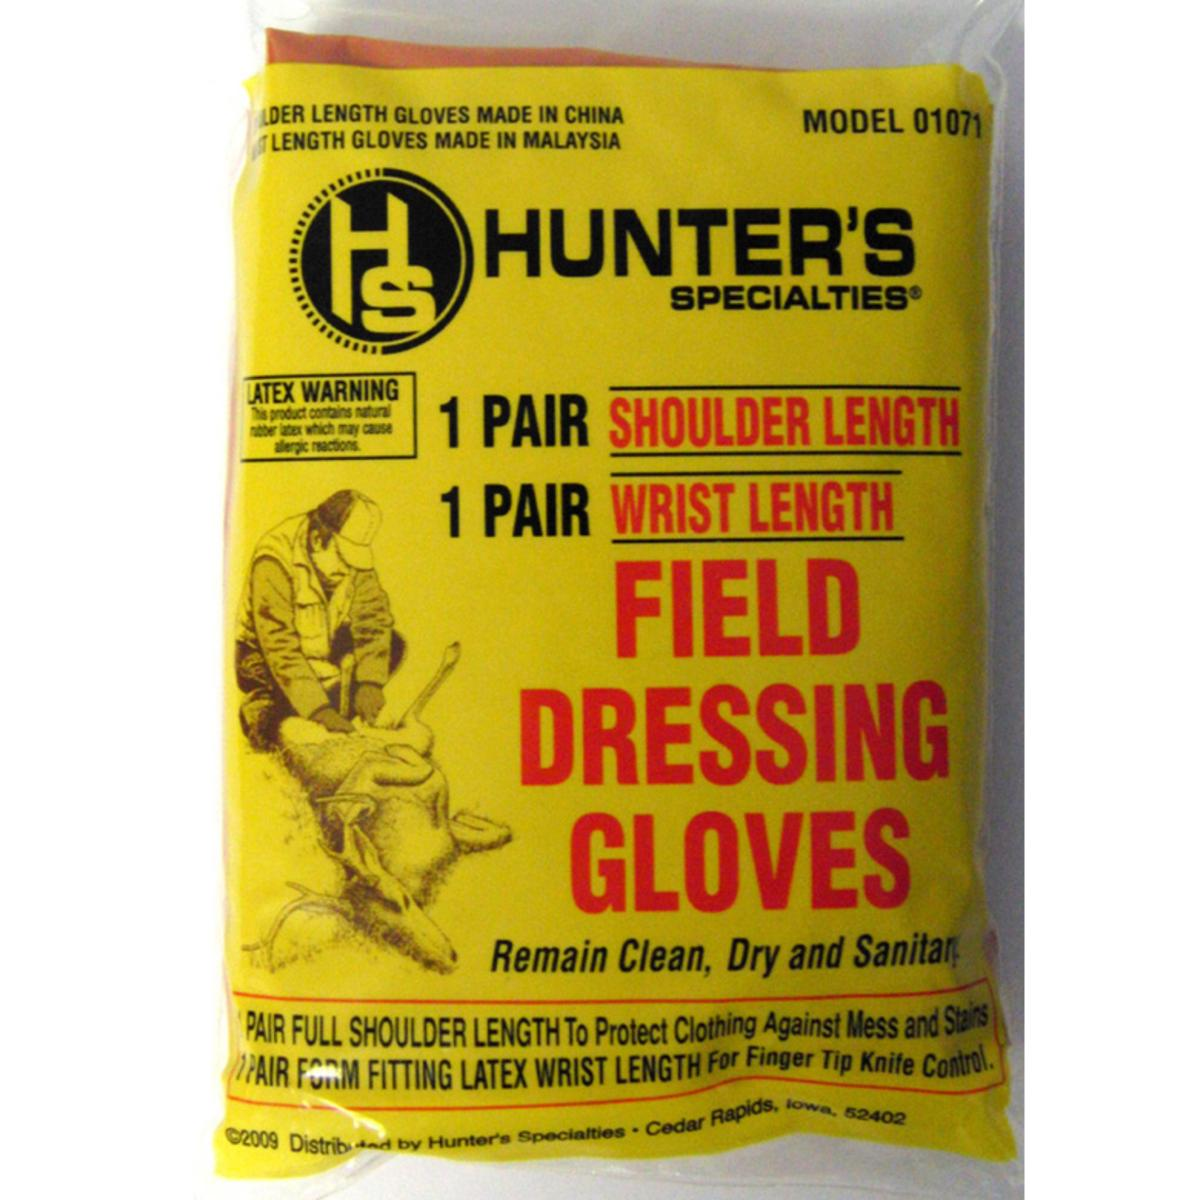 a short guide on field dressing Acid buildup within the muscles additionally, a speedy recovery of the deer permits prompt field dressing, which helps reduce body heat my deer is down, so what comes next make sure that your deer is dead cautiously approach the animal from the back side using a small stick or weed from arm's length distance ,.